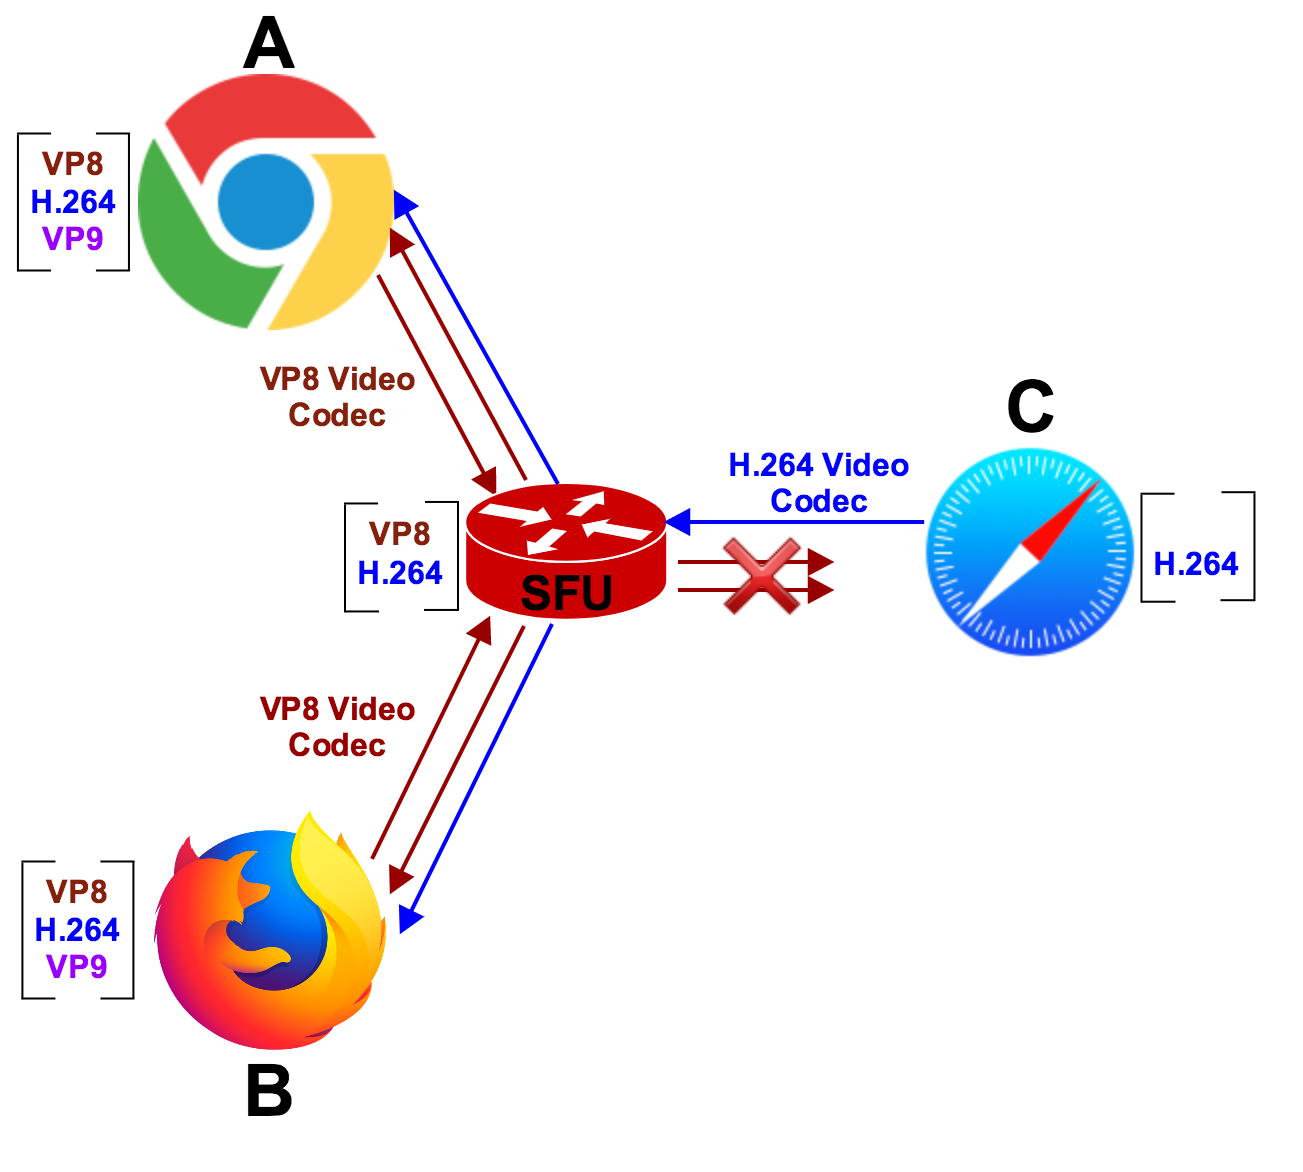 The use of Safari 11 in Group Rooms may generate interoperability problems when using Twilio's default codec settings. For example, when Chrome and Firefox connect to a Group Room they negotiate VP8 by default. If a Safari 11 client connects later to that room, it will not he able to receive Chrome and Firefox VP8 video tracks. However, thanks to its H.264 codec support, Chrome and Firefox can seamlessly receive the video track published by Safari 11.